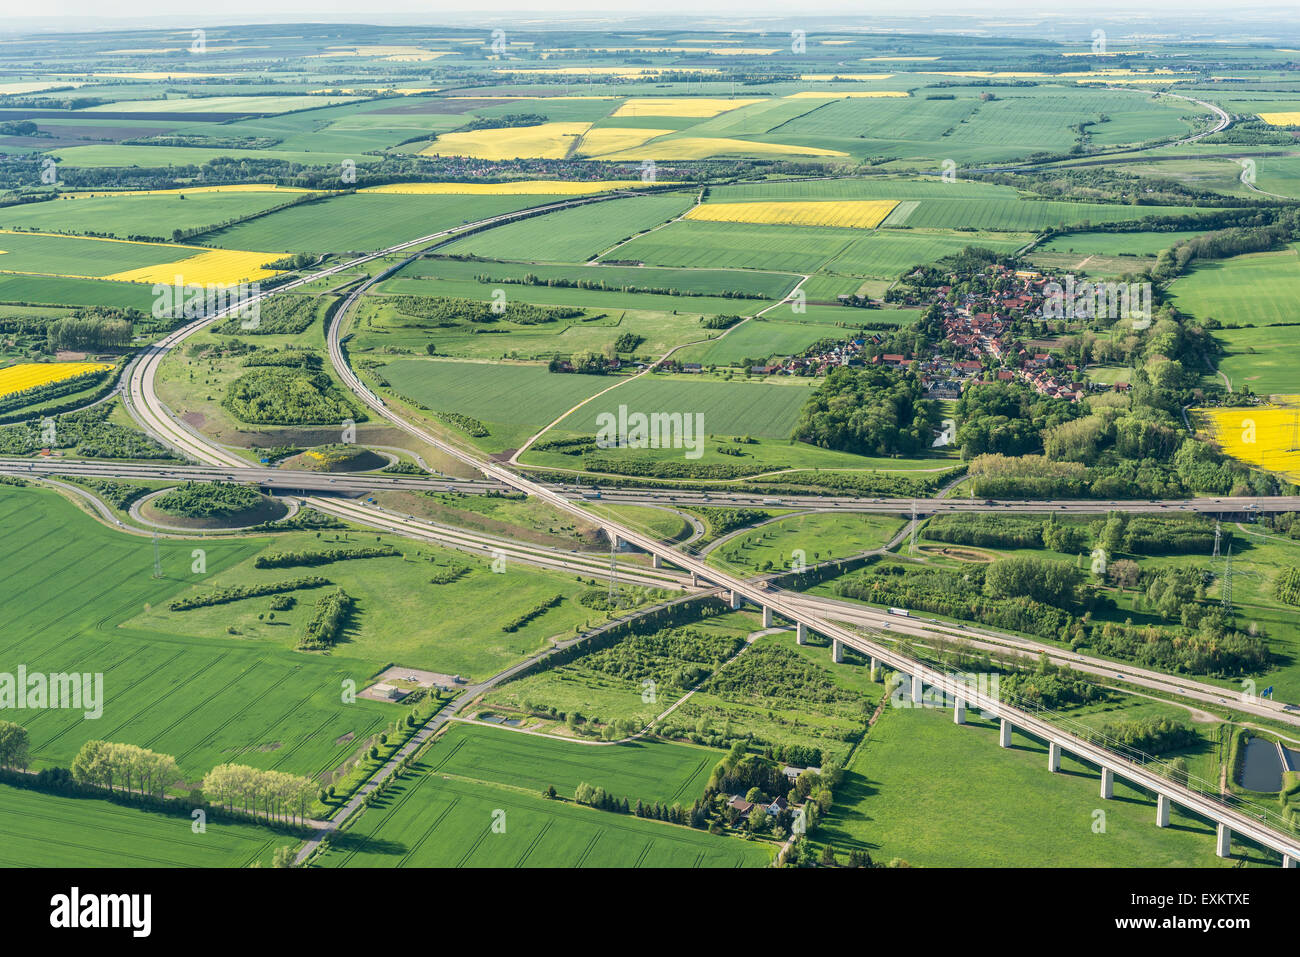 German federal highways 4 and 71, Erfurter Kreuz interchange, ICE high-speed railway line Berlin-Munich, opened - Stock Image